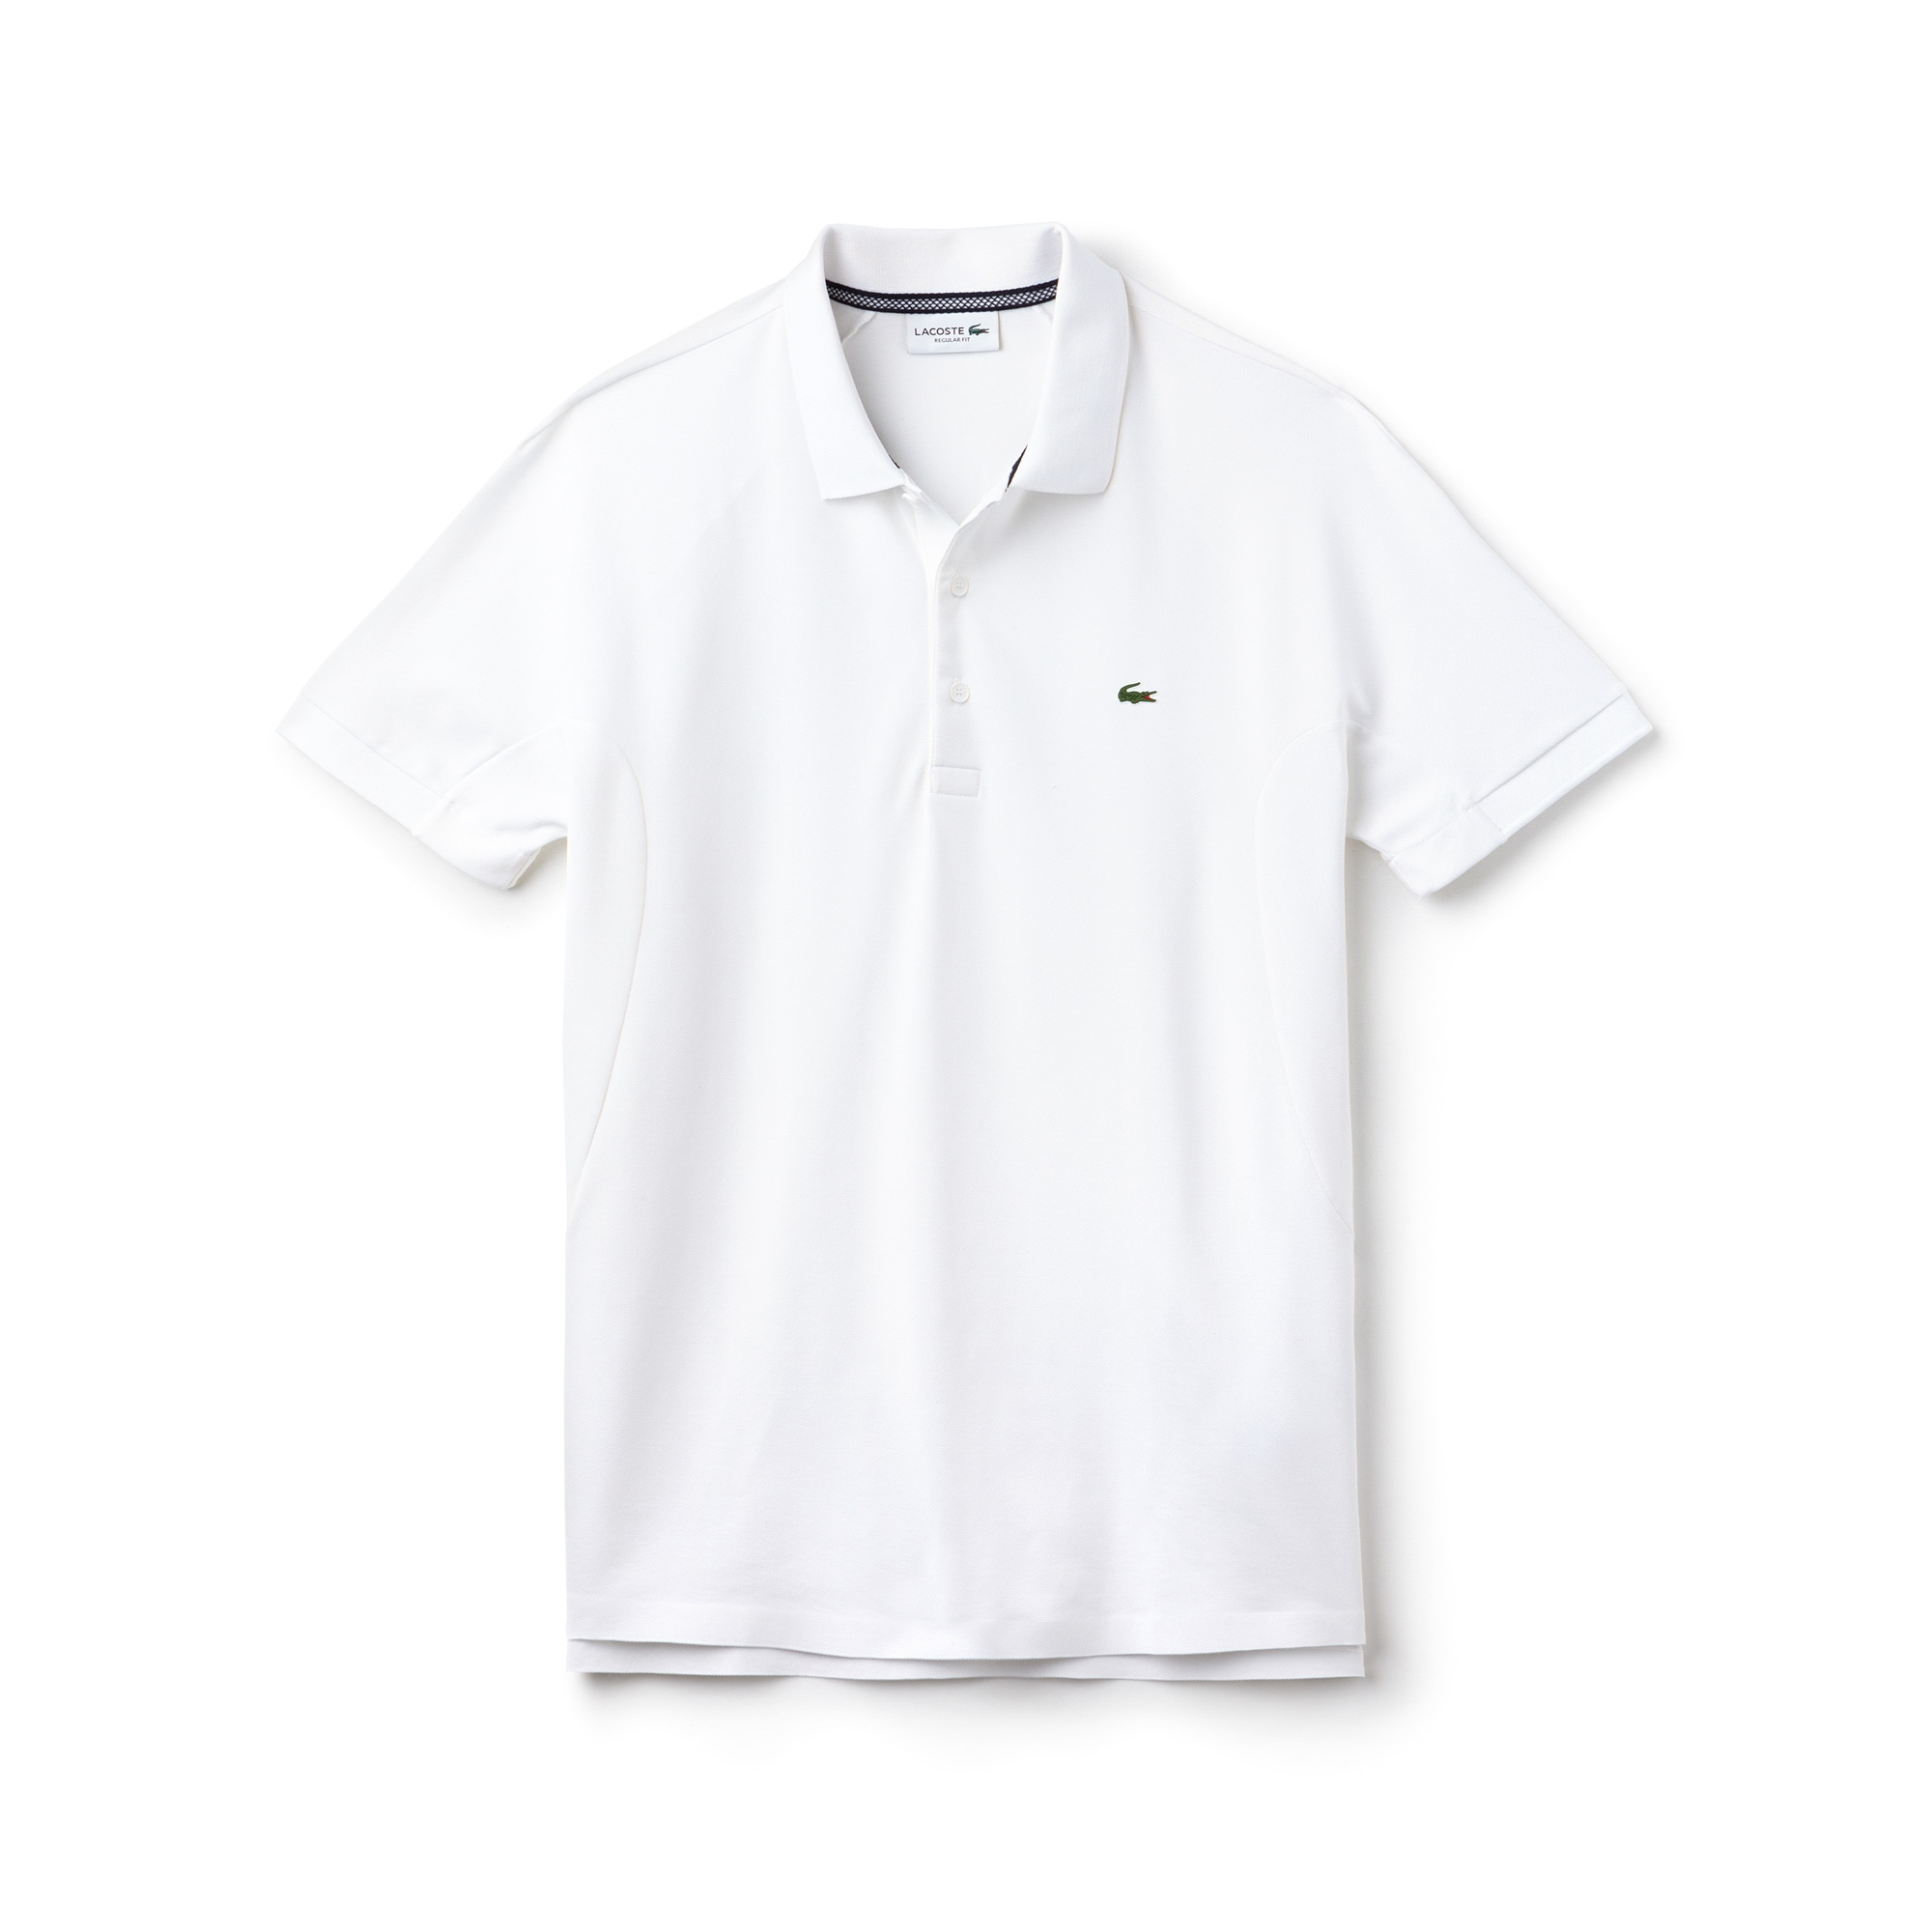 Men's 85th Anniversary Limited Edition Tech Piqué Polo by Lacoste